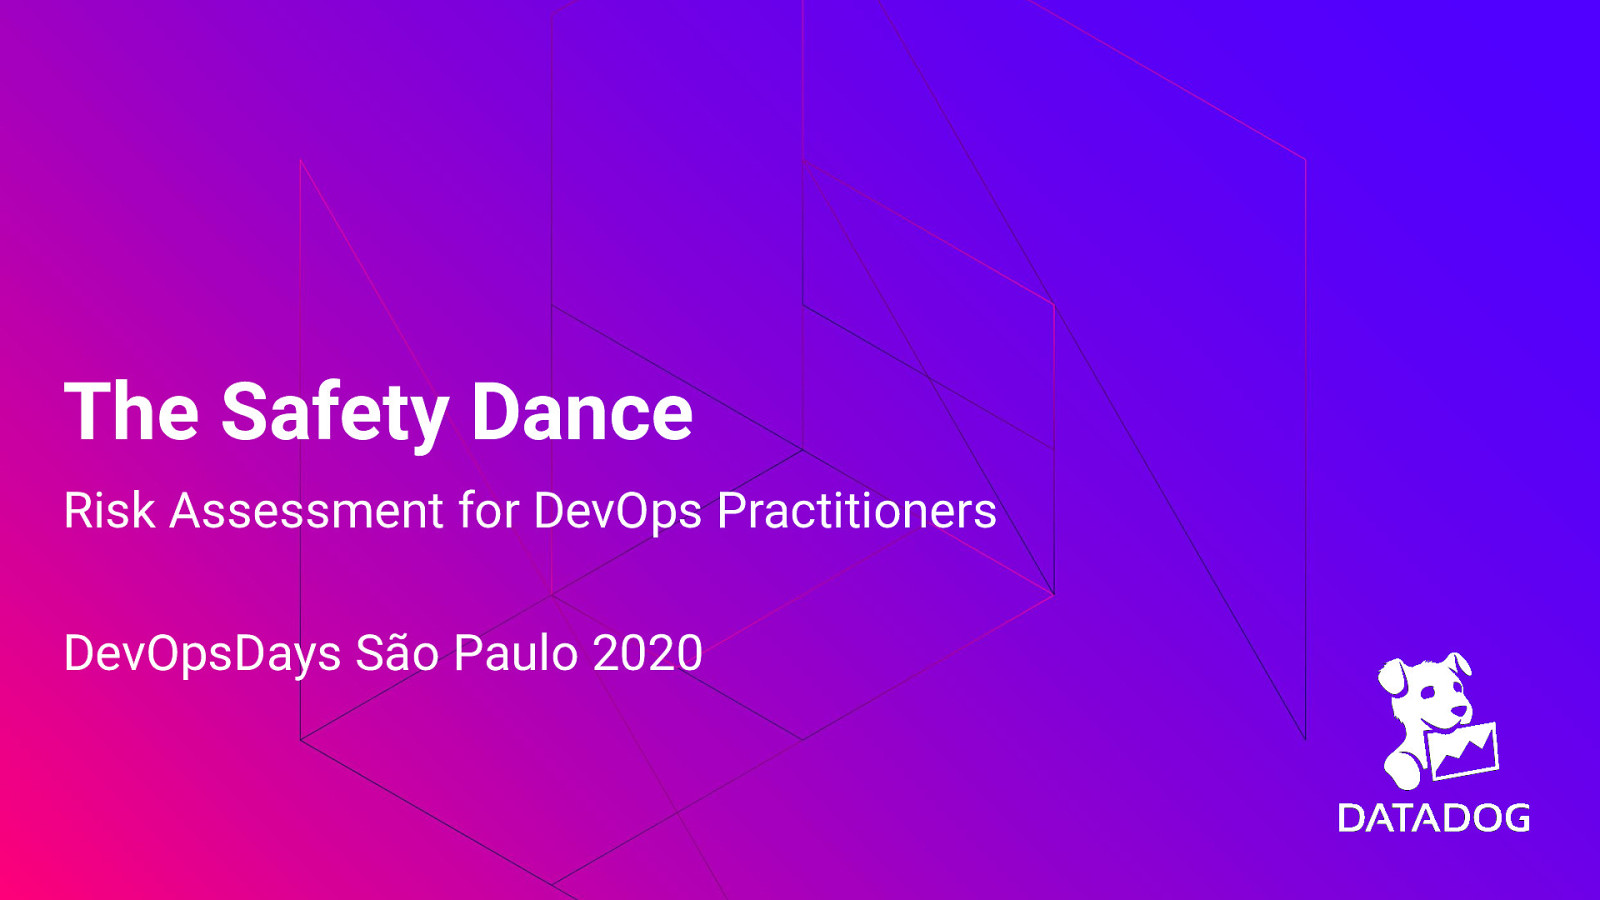 The Safety Dance: Risk Assessment for DevOps Practitioners